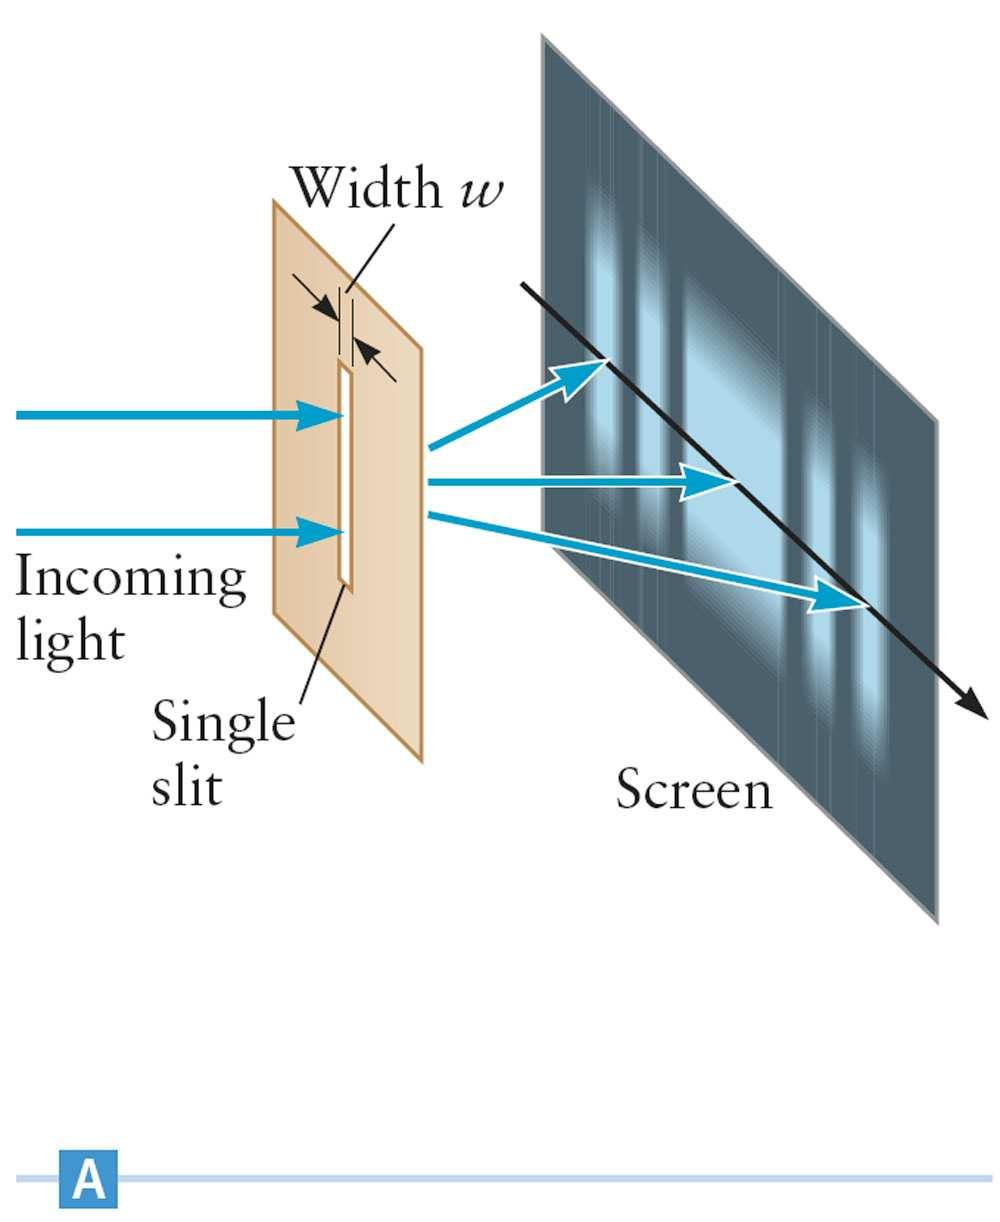 Young Assume the single slit has a width, w.